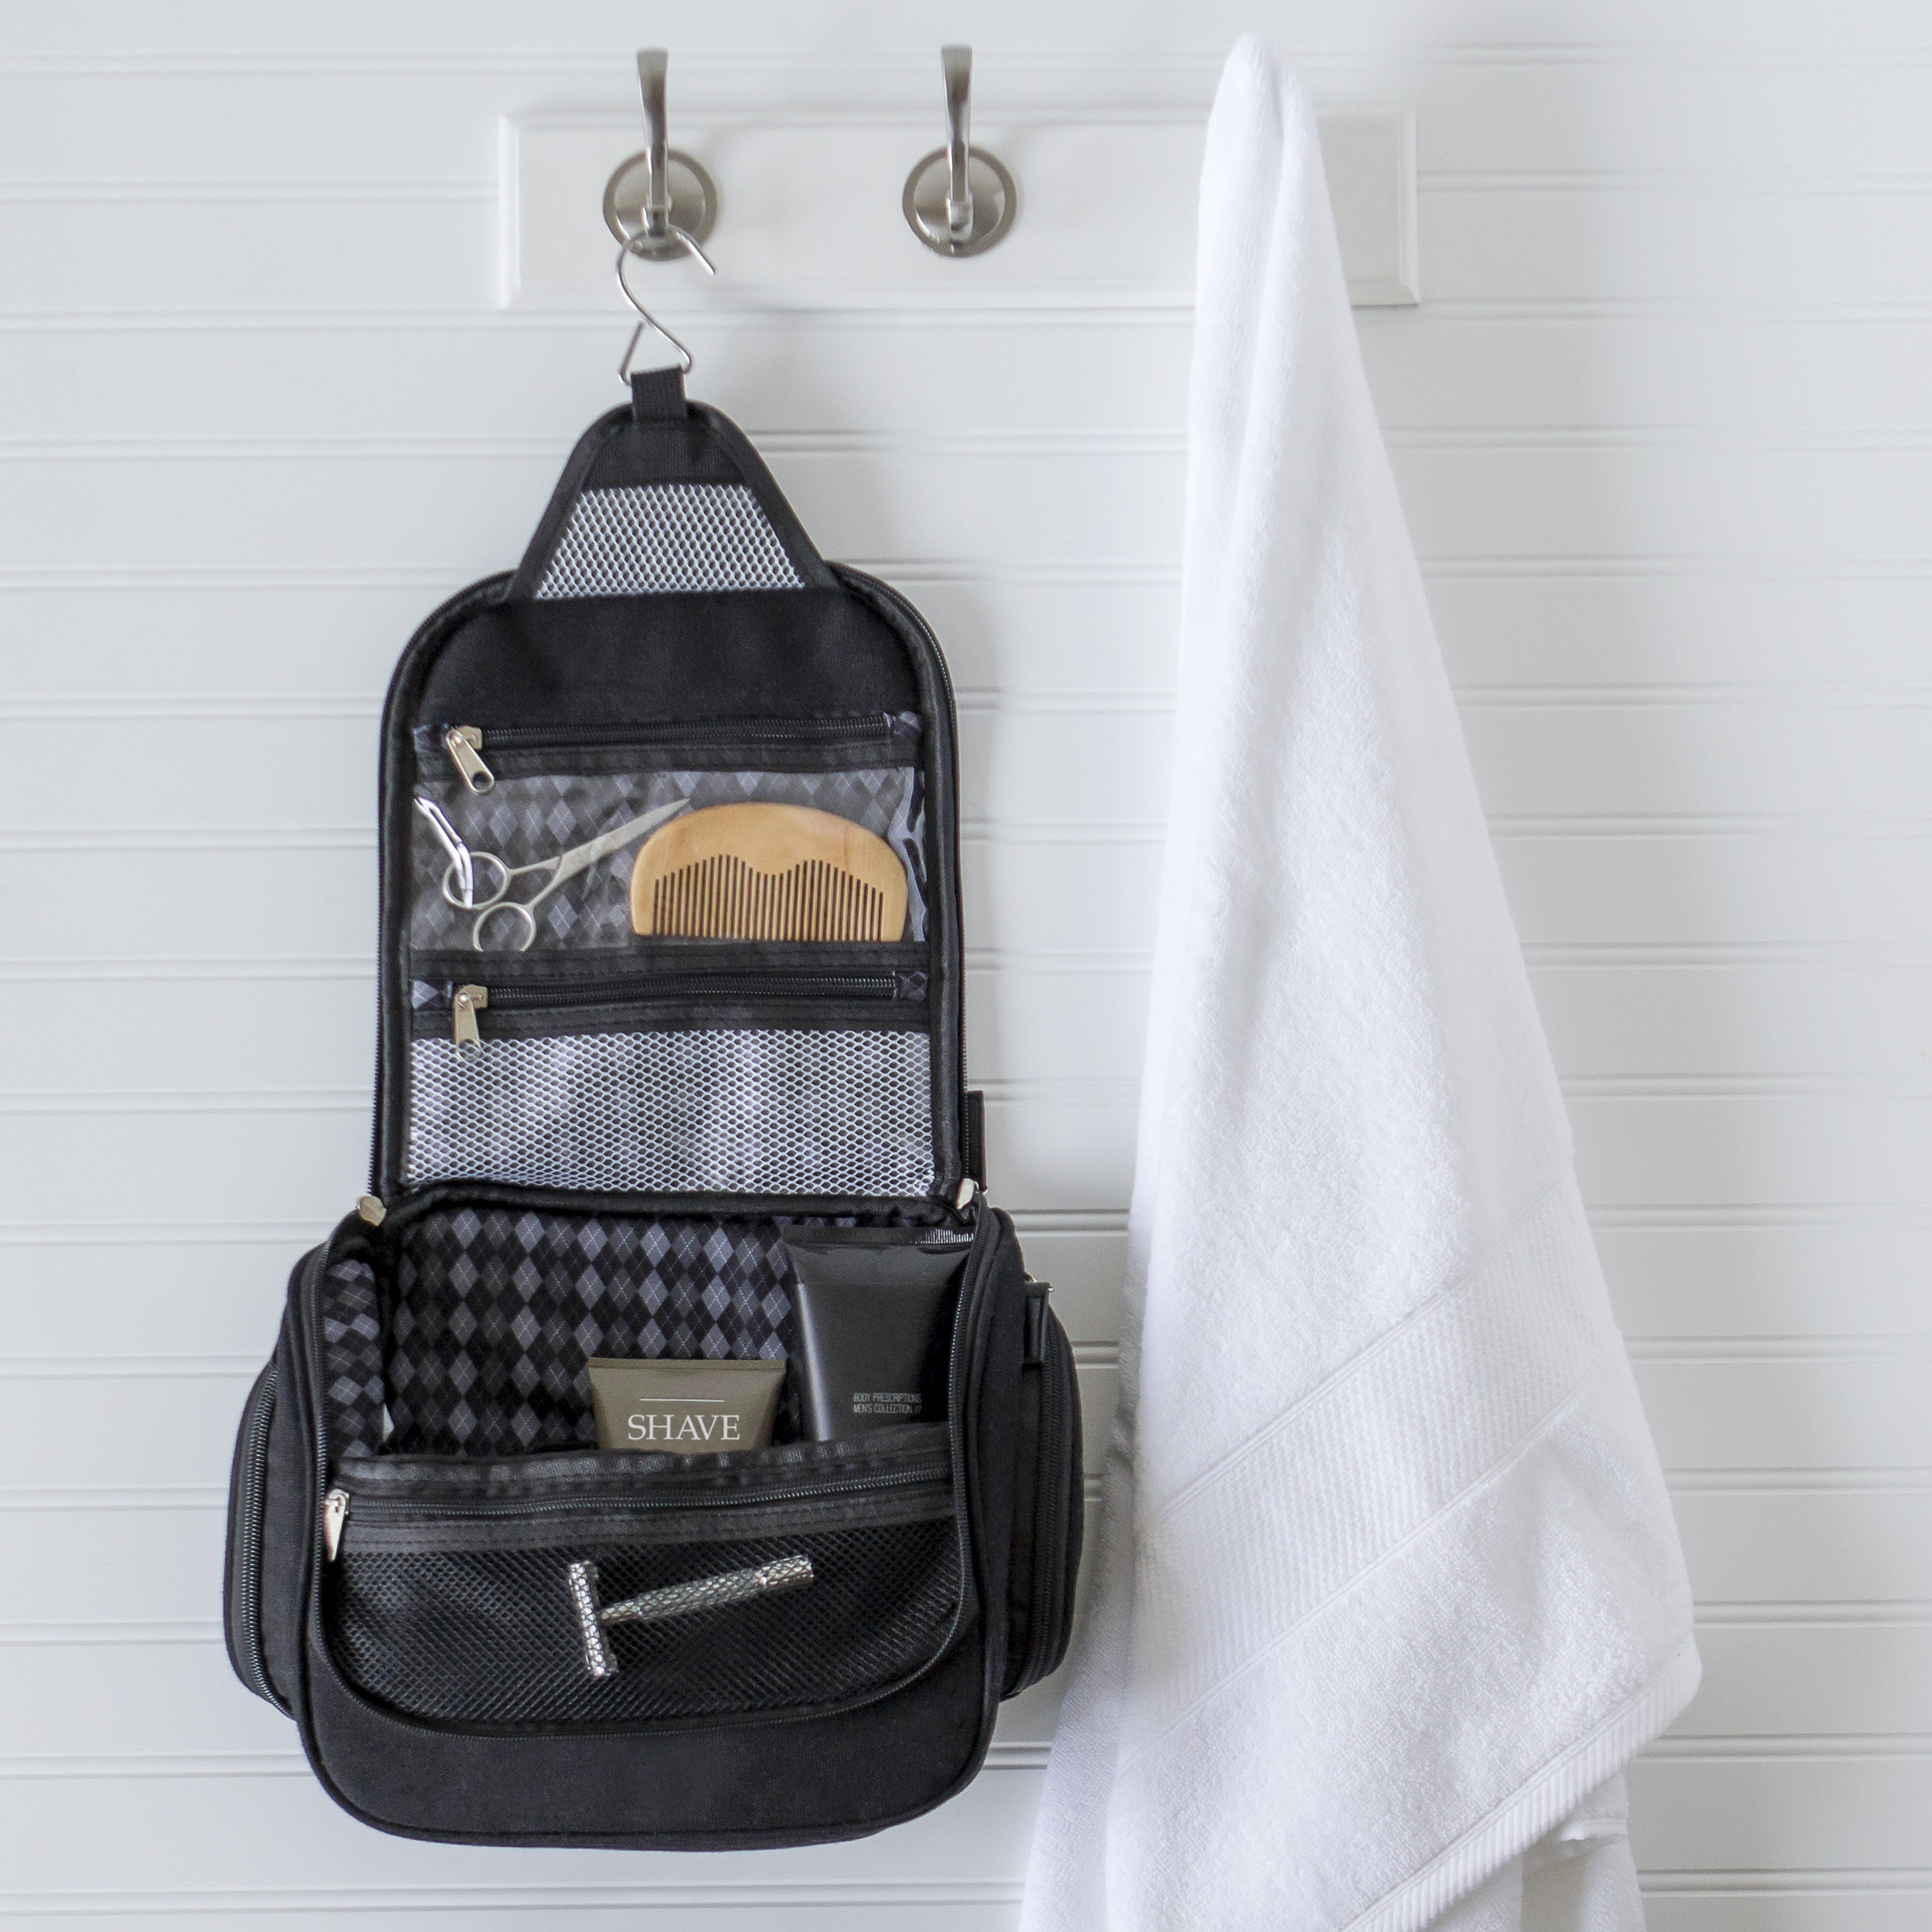 Personalized Men S Waxed Canvas And Leather Hanging Toiletry Bag Free Shipping On Orders Over 45 17403333